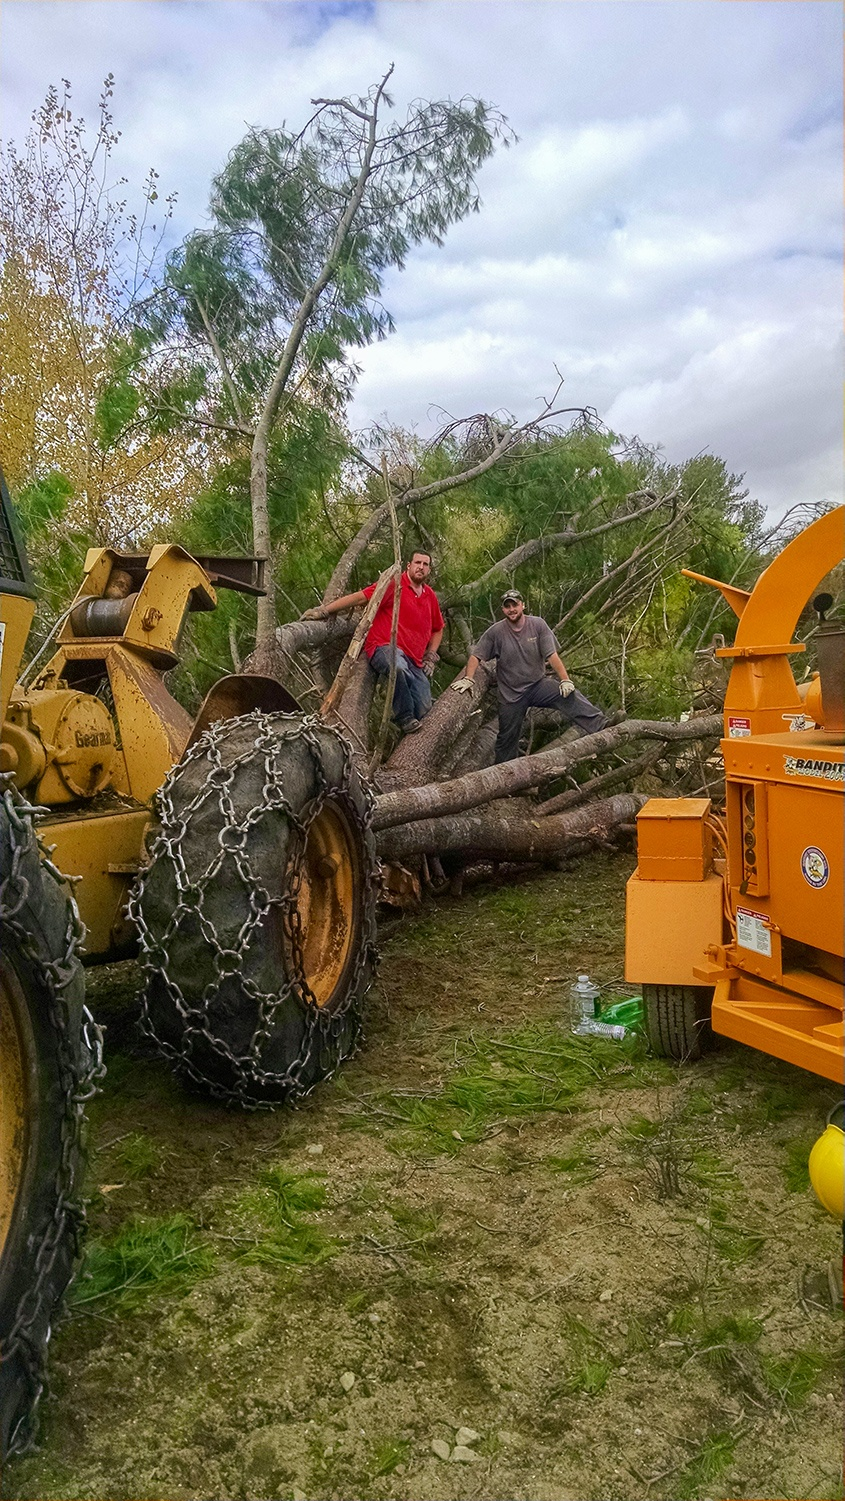 JW Land Clearing workers standing near large tree they are removing